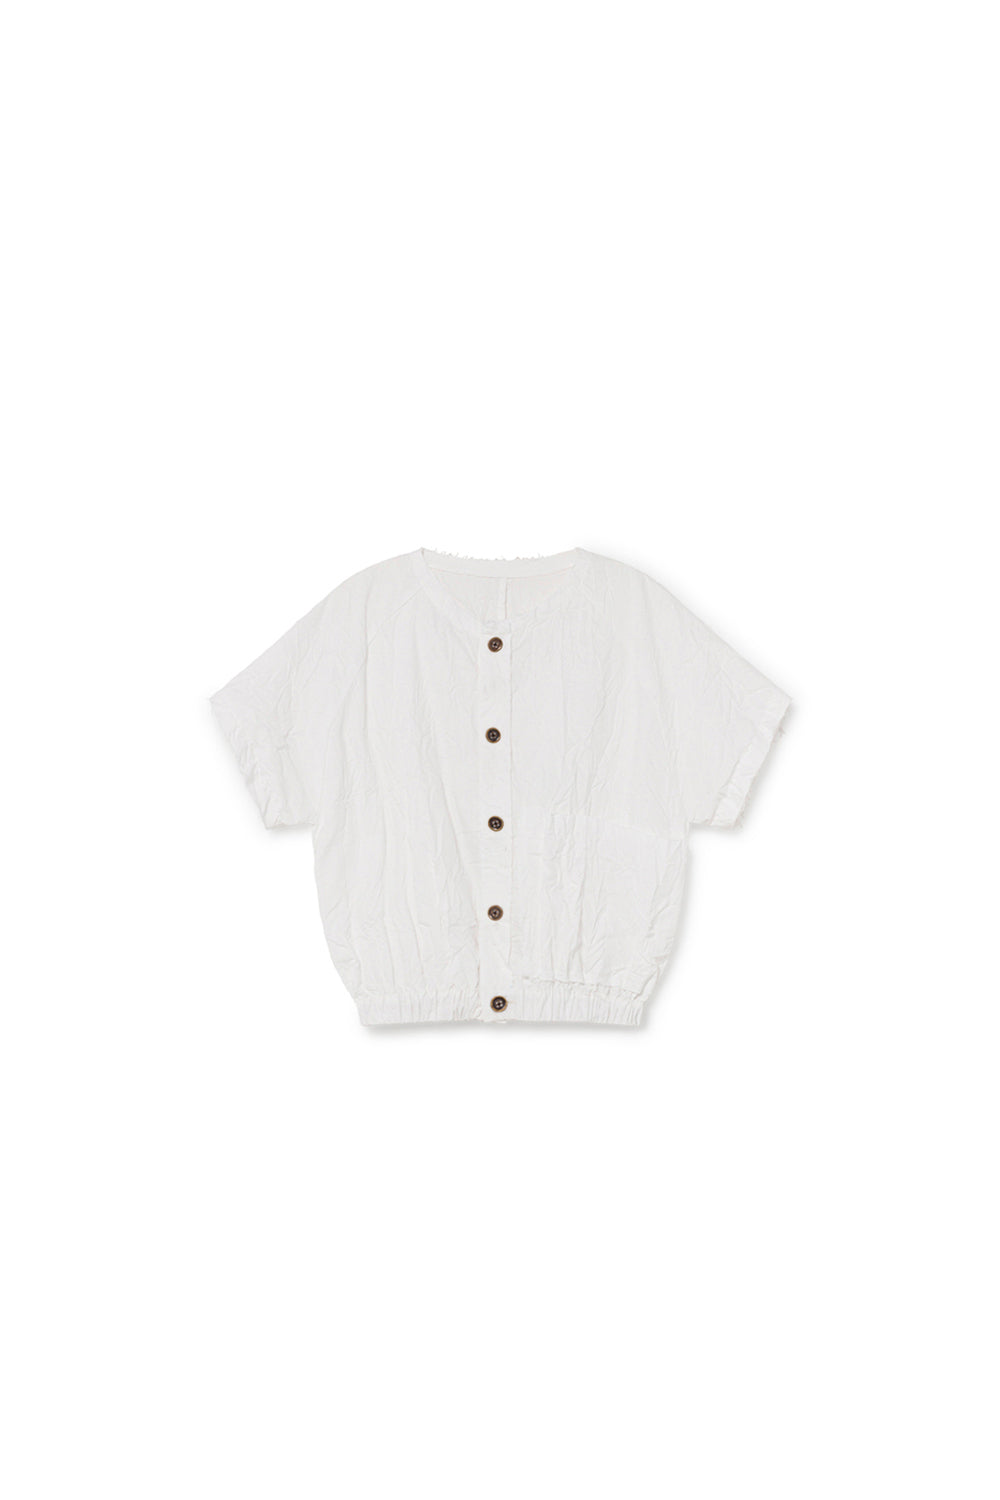 Swing LCF Shirt